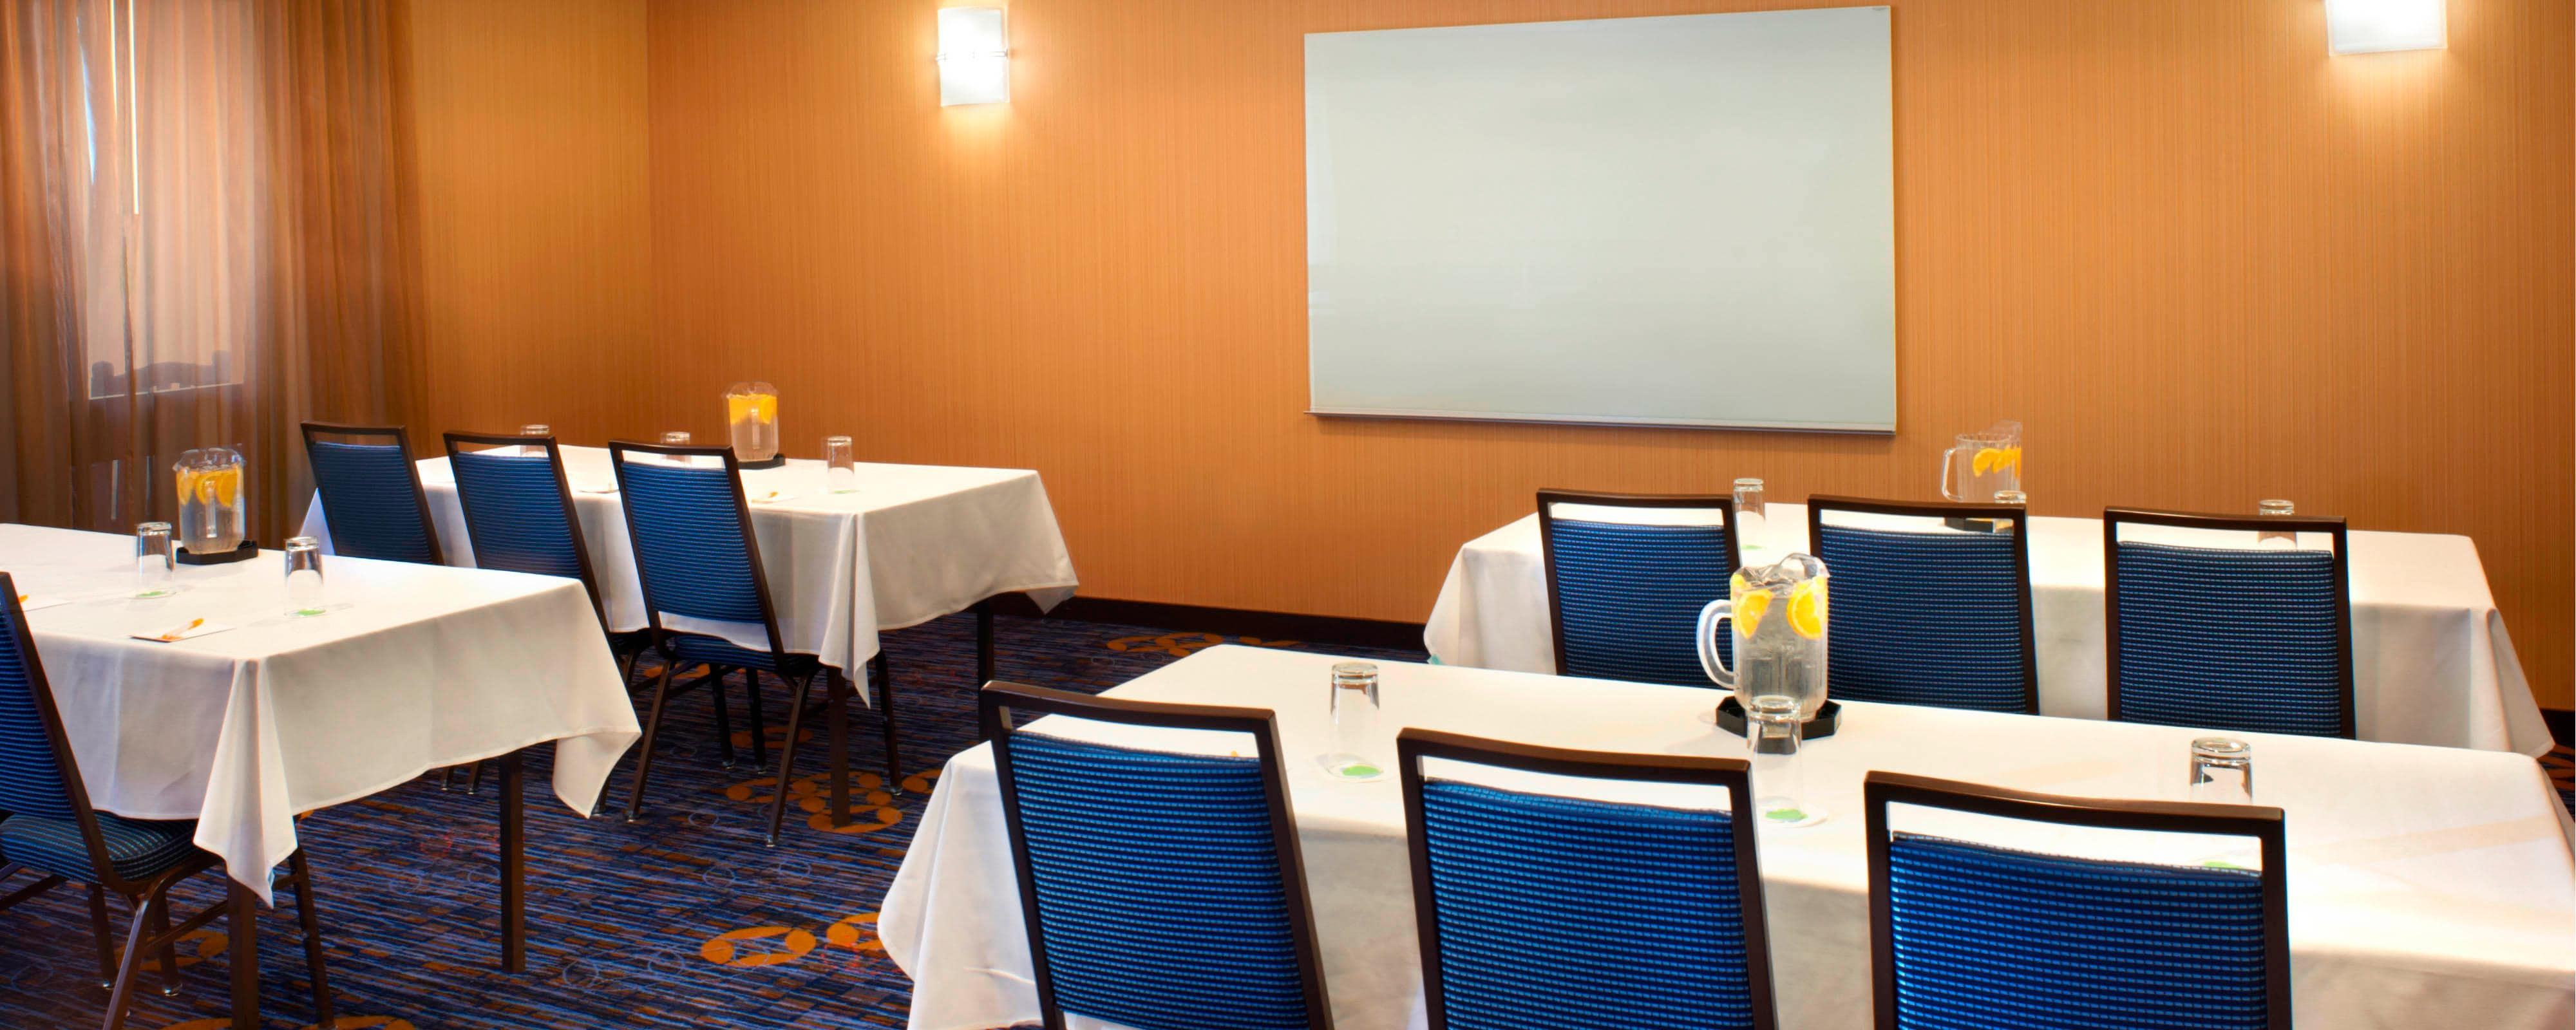 Independence Ohio Meeting Rooms